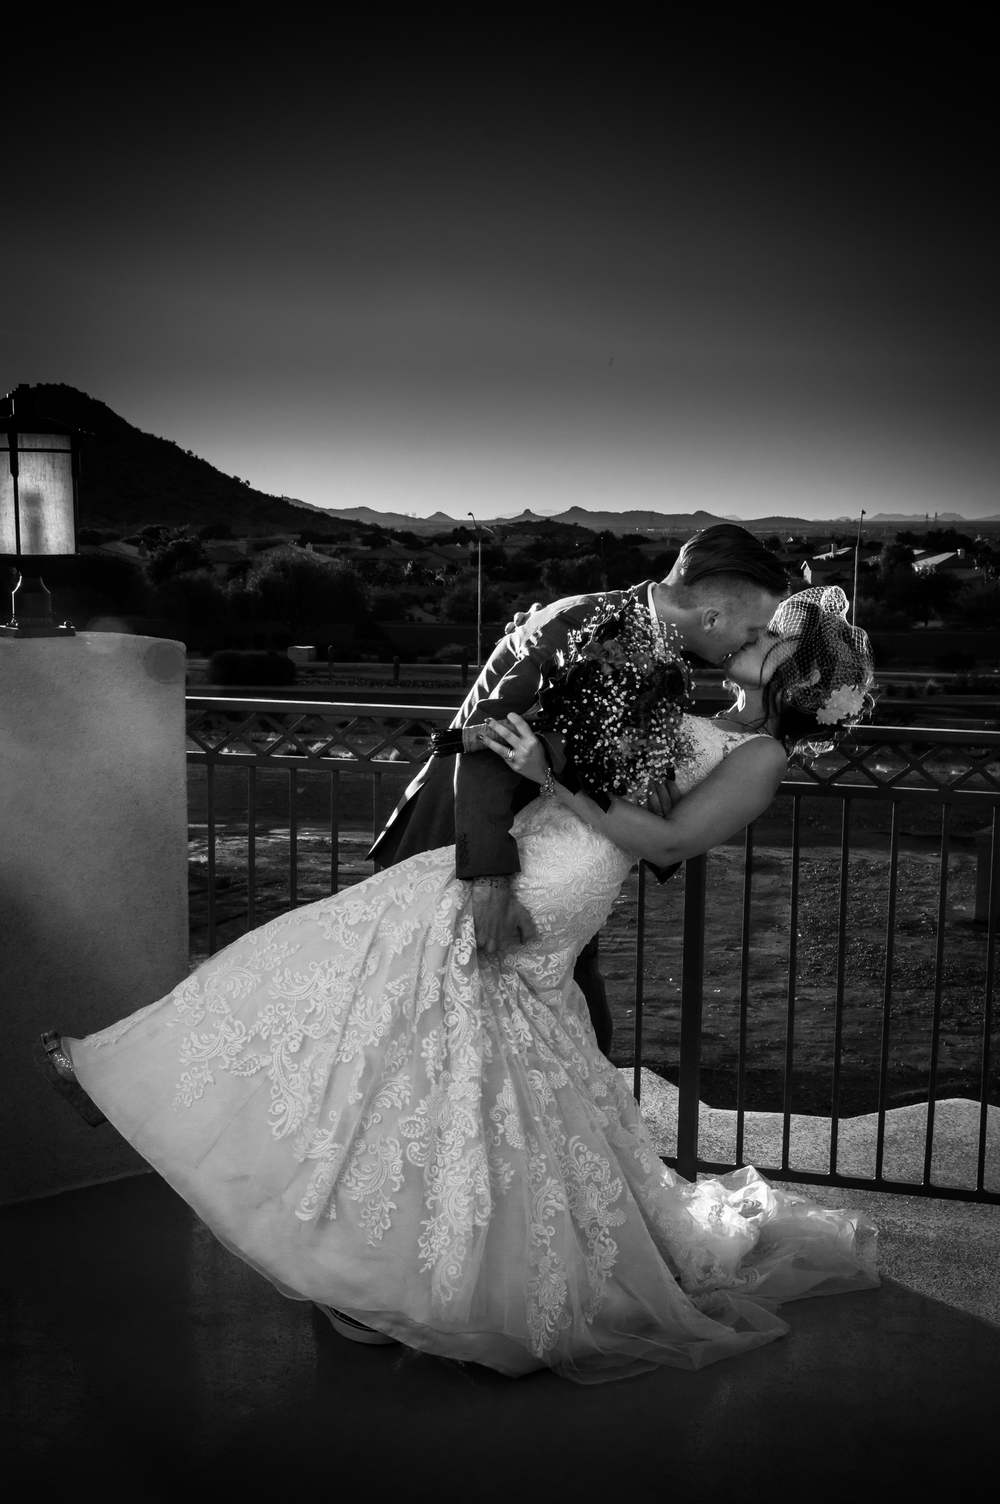 Nick_Cardona_Photography_Gilbert_AZ_wedding_Photographer_Blythe-19.jpg